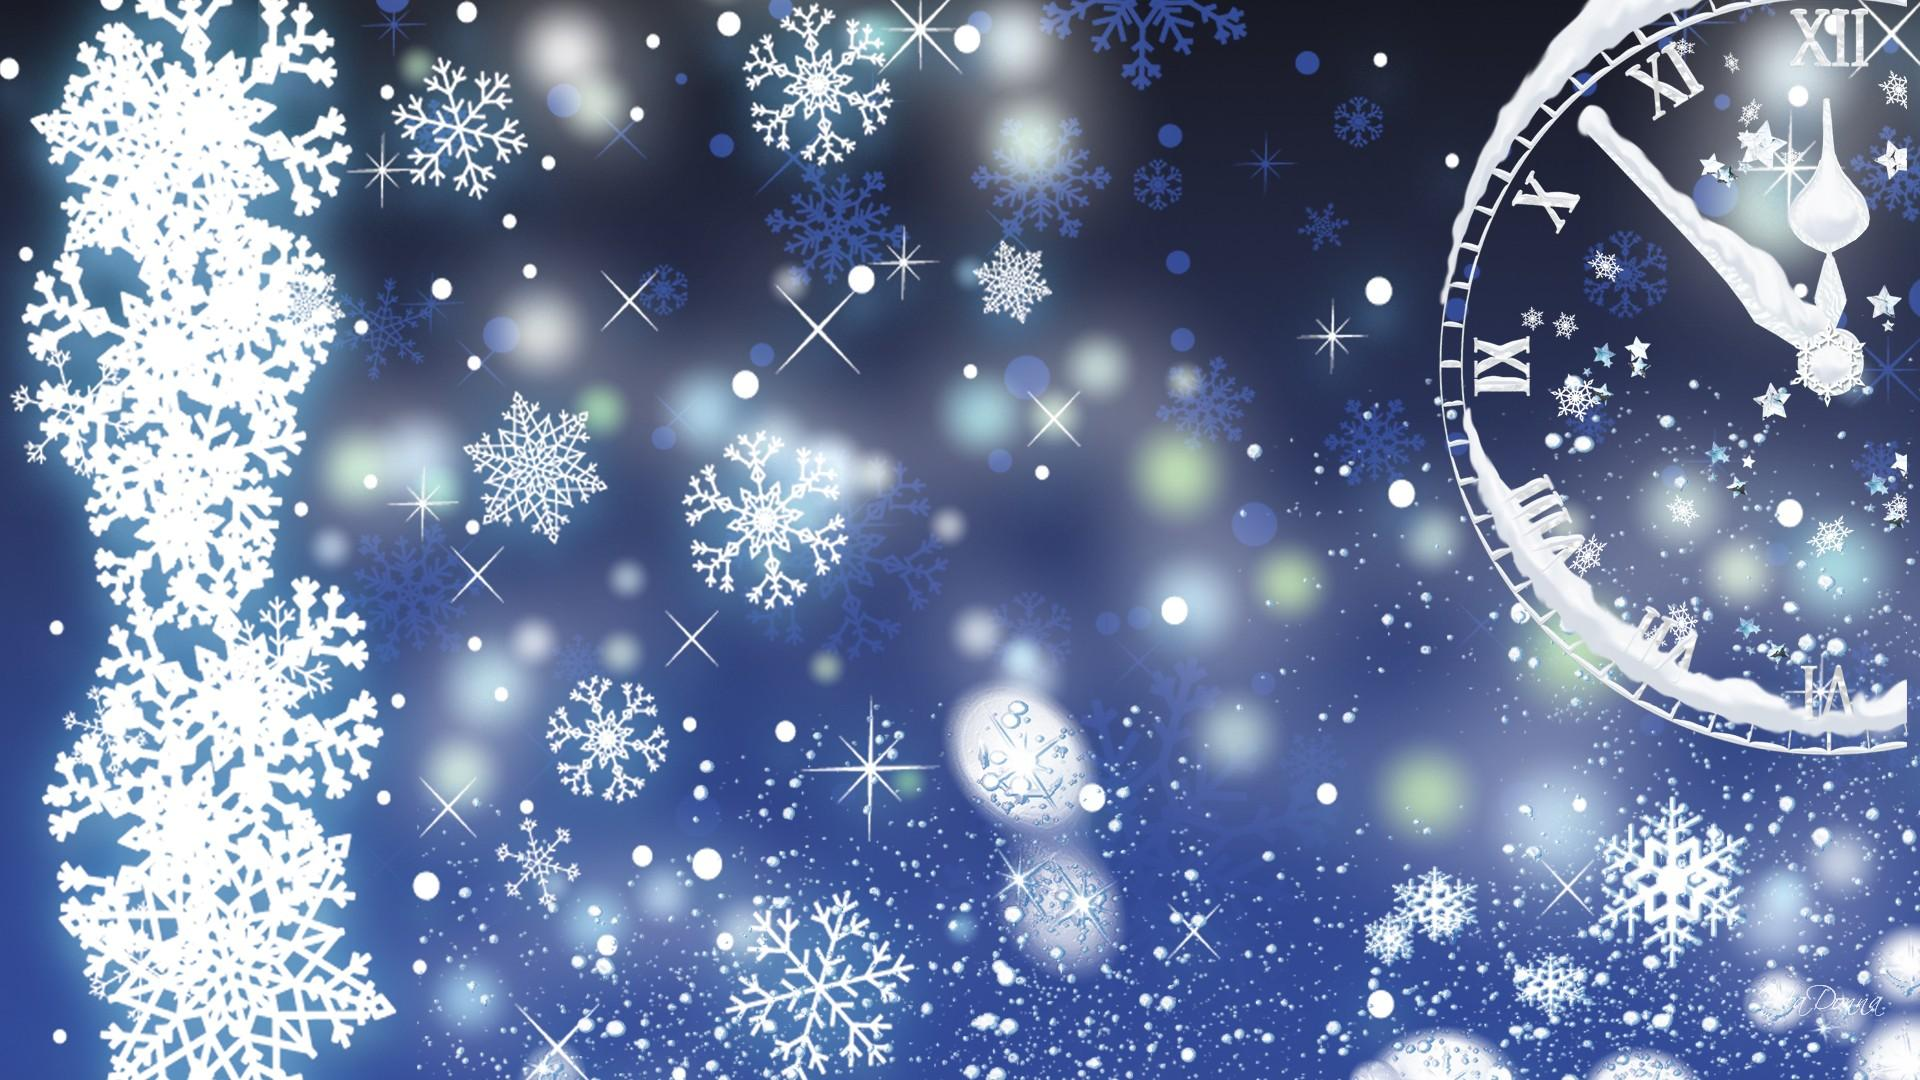 New Year Eve Wallpapers